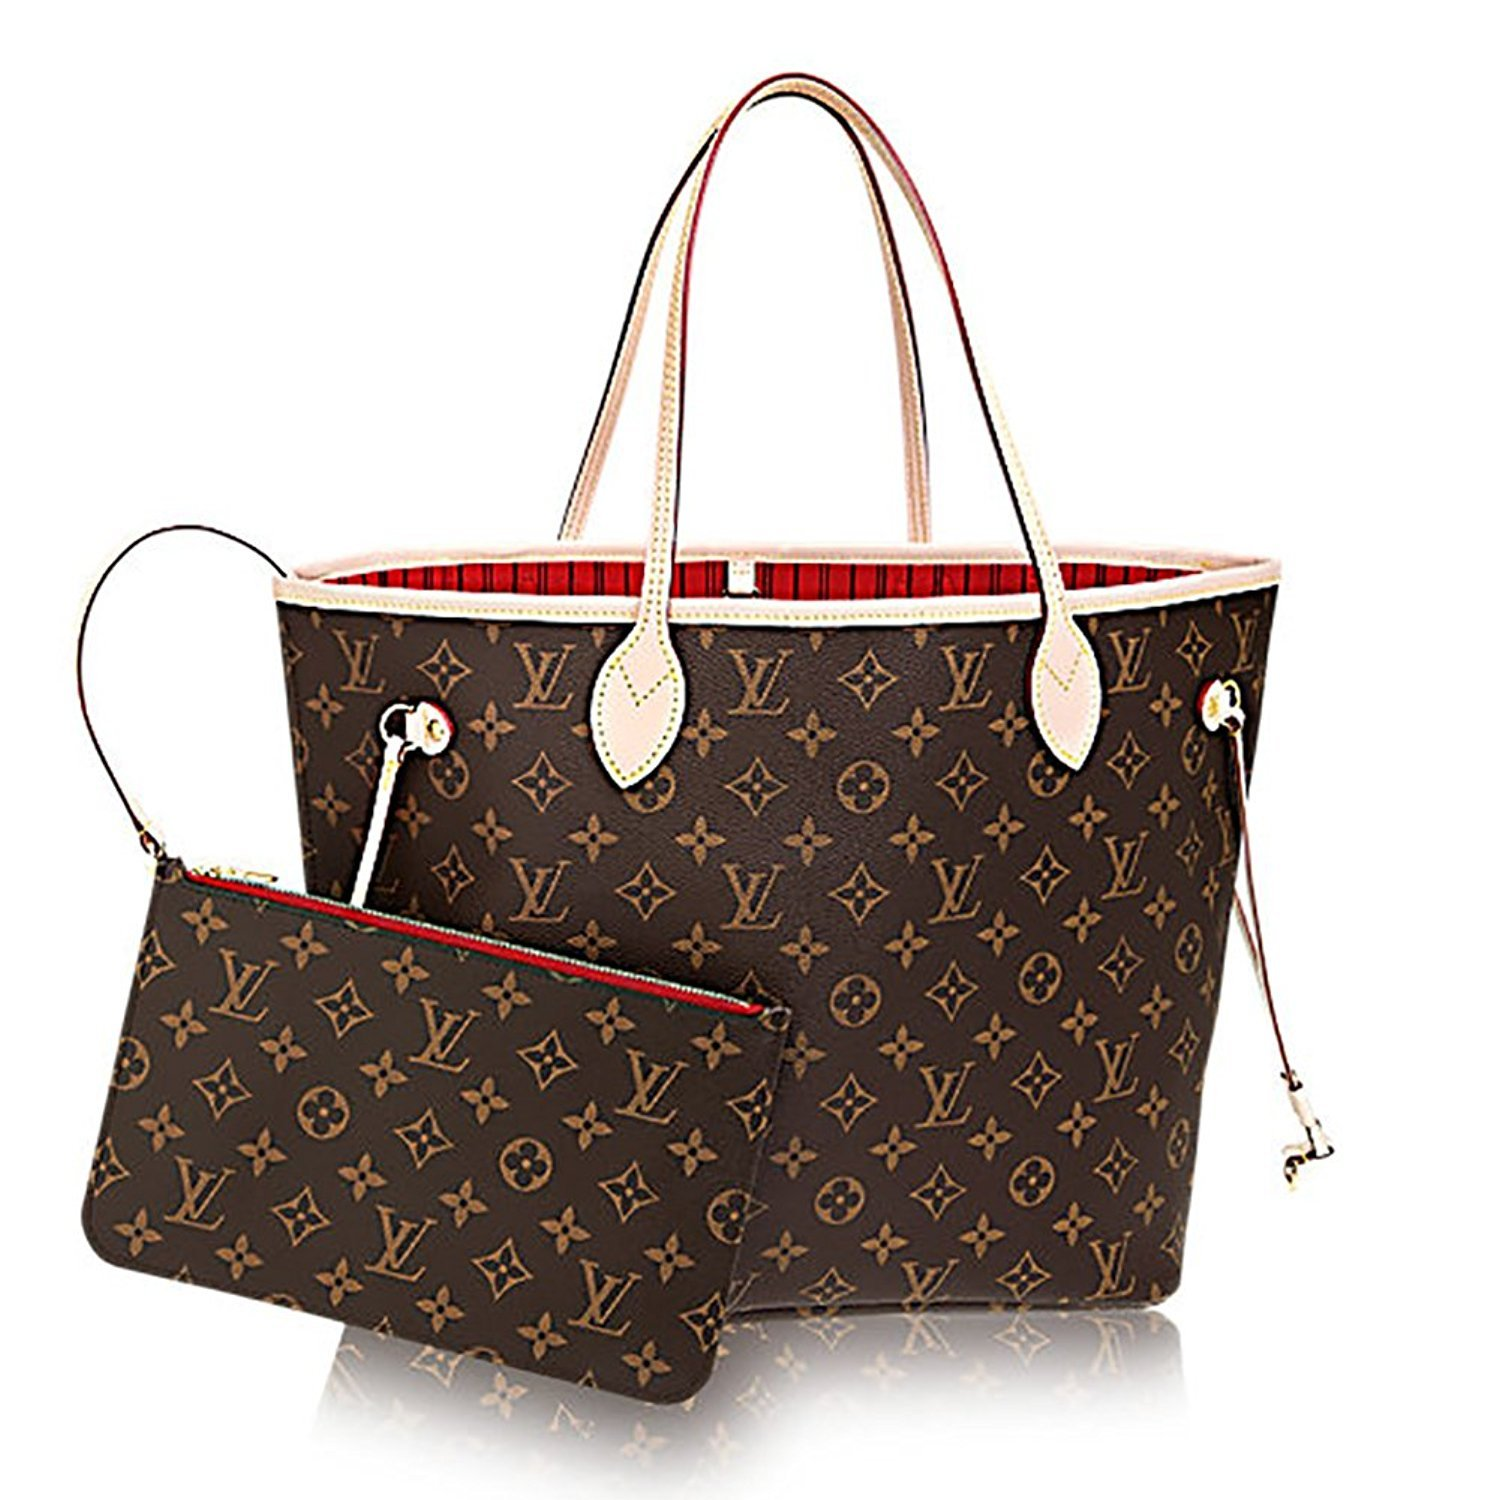 Louis Vuitton Monogram Canvas Cherry Neverfull MM M41177  Handbags   Amazon.com 07273c46ffe1d